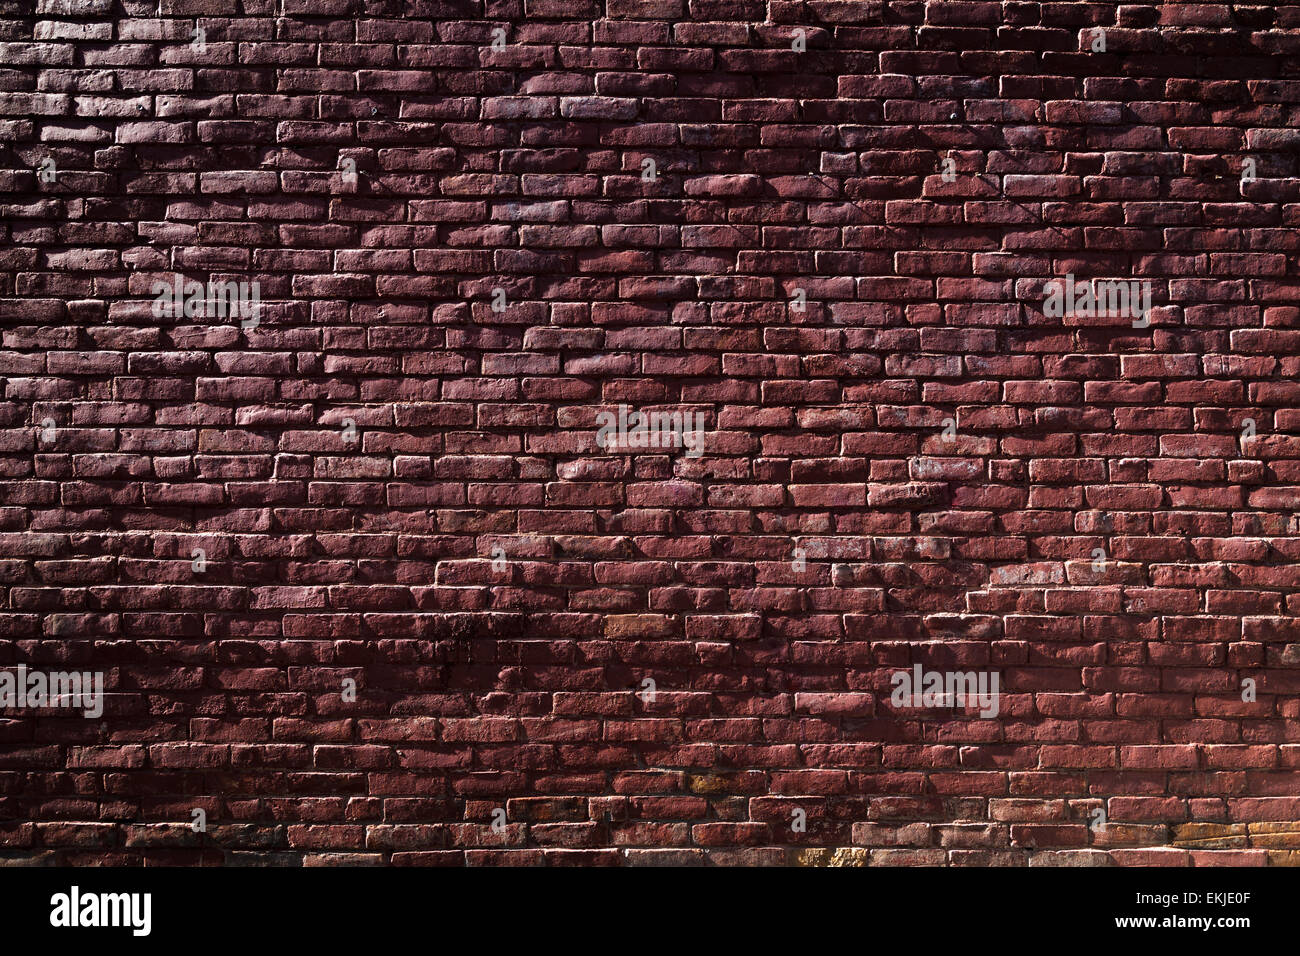 Old Red Brick Wall with Sunlight and Shadows Stock Photo